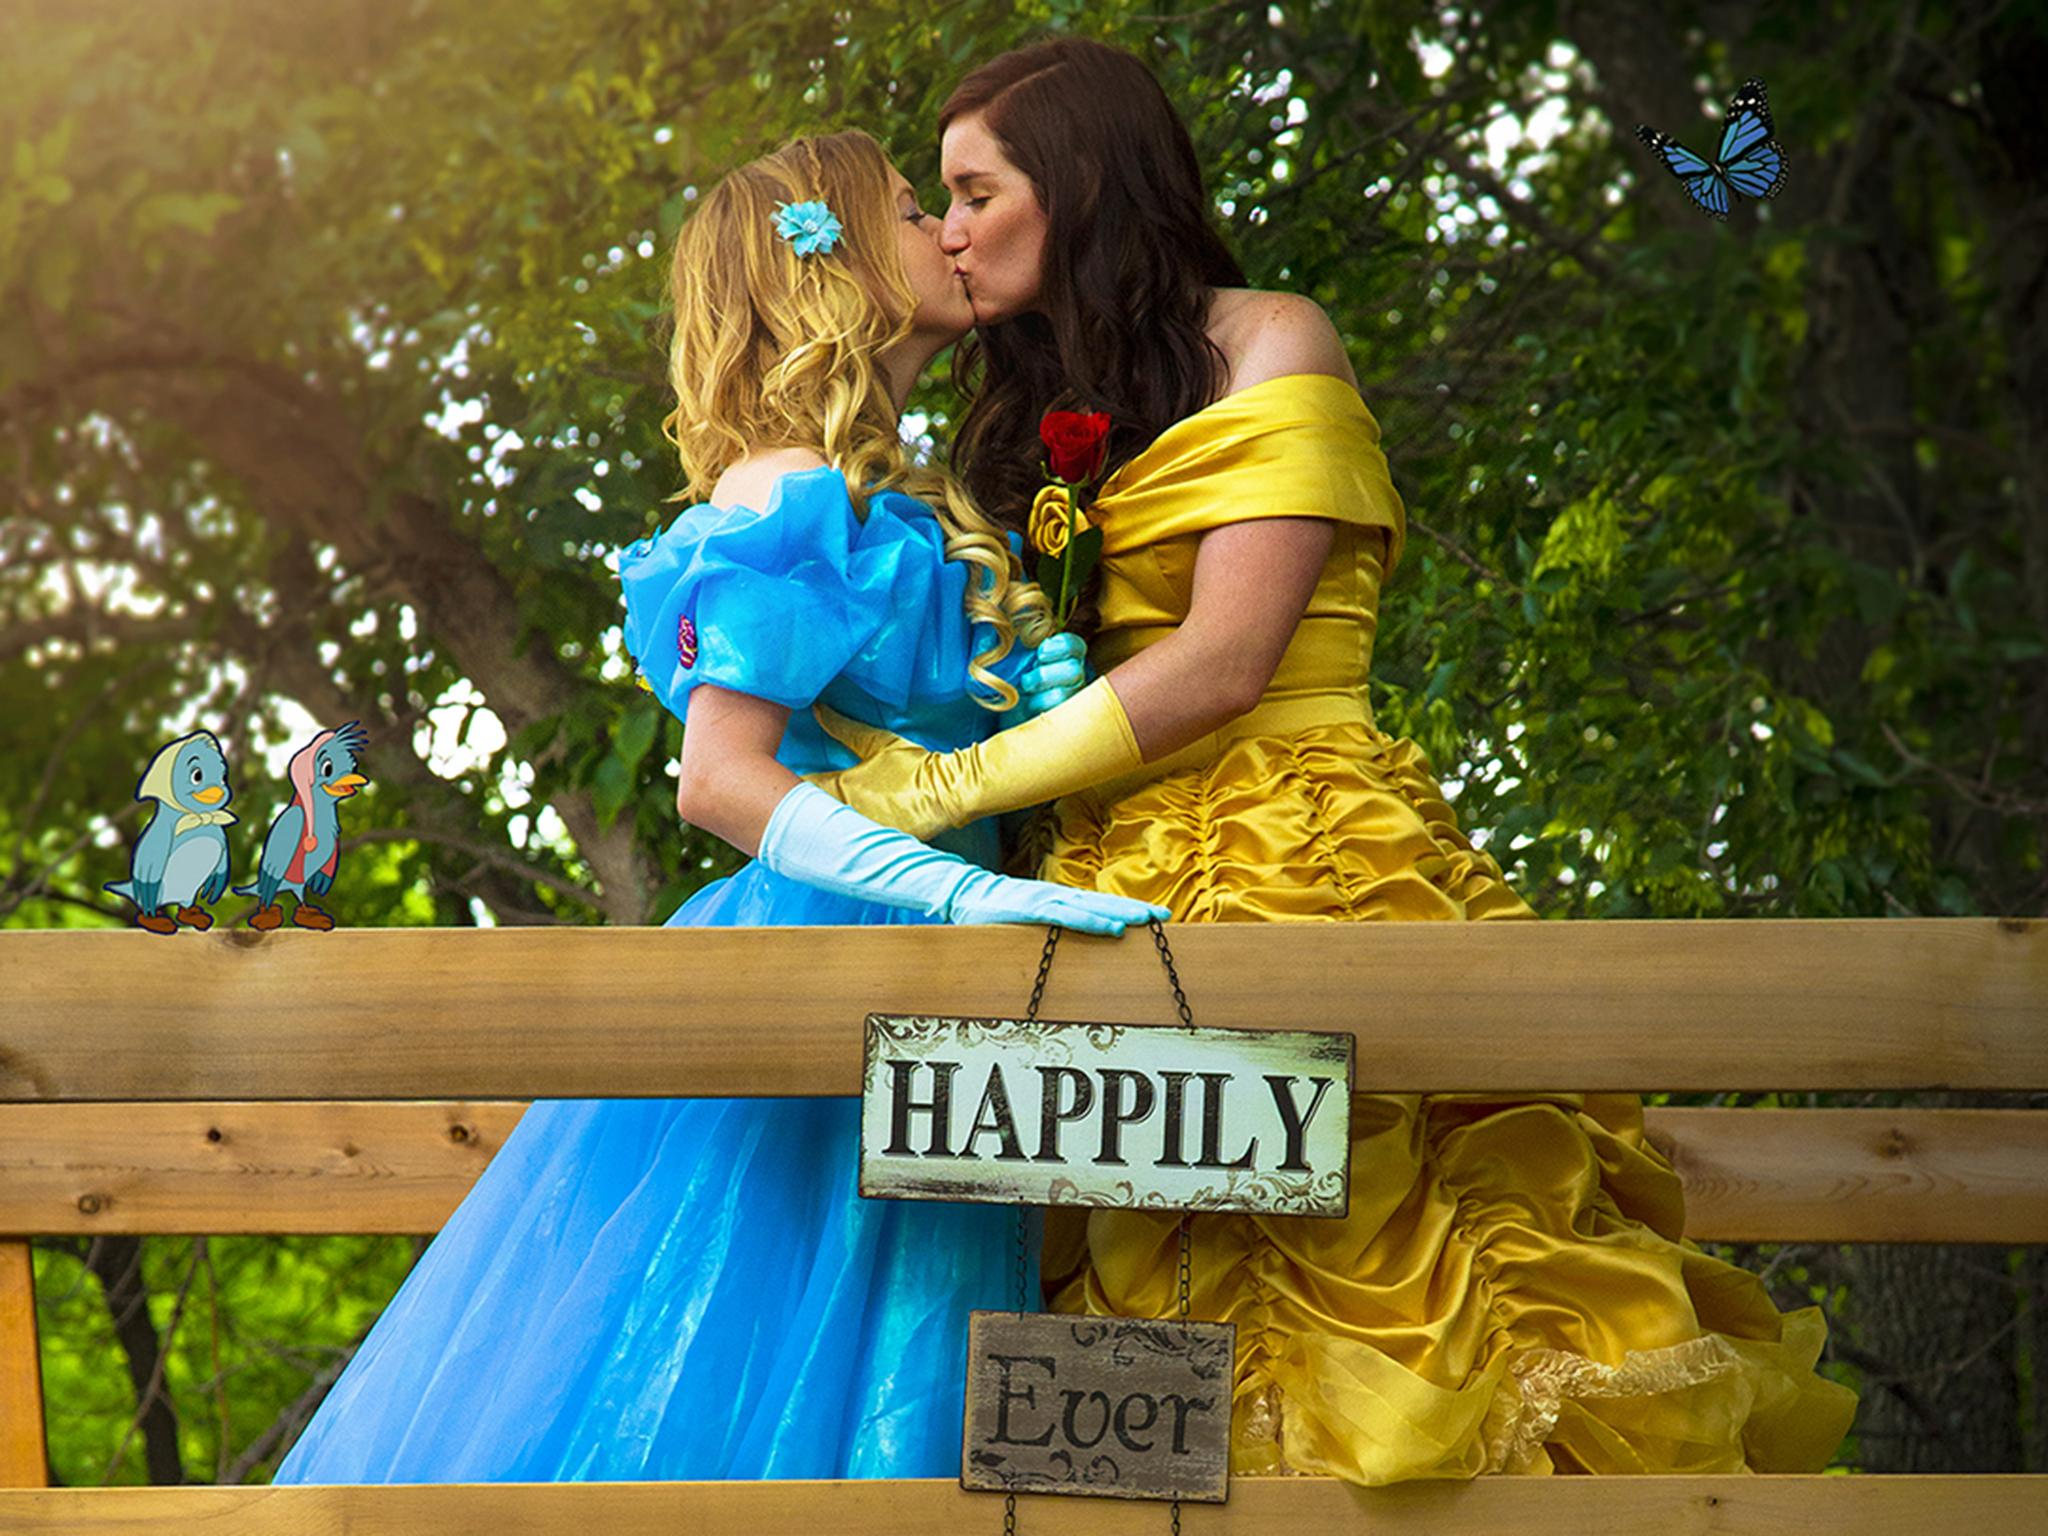 Same-sex couple celebrate their modern-day fairytale by dressing up as Disney princesses